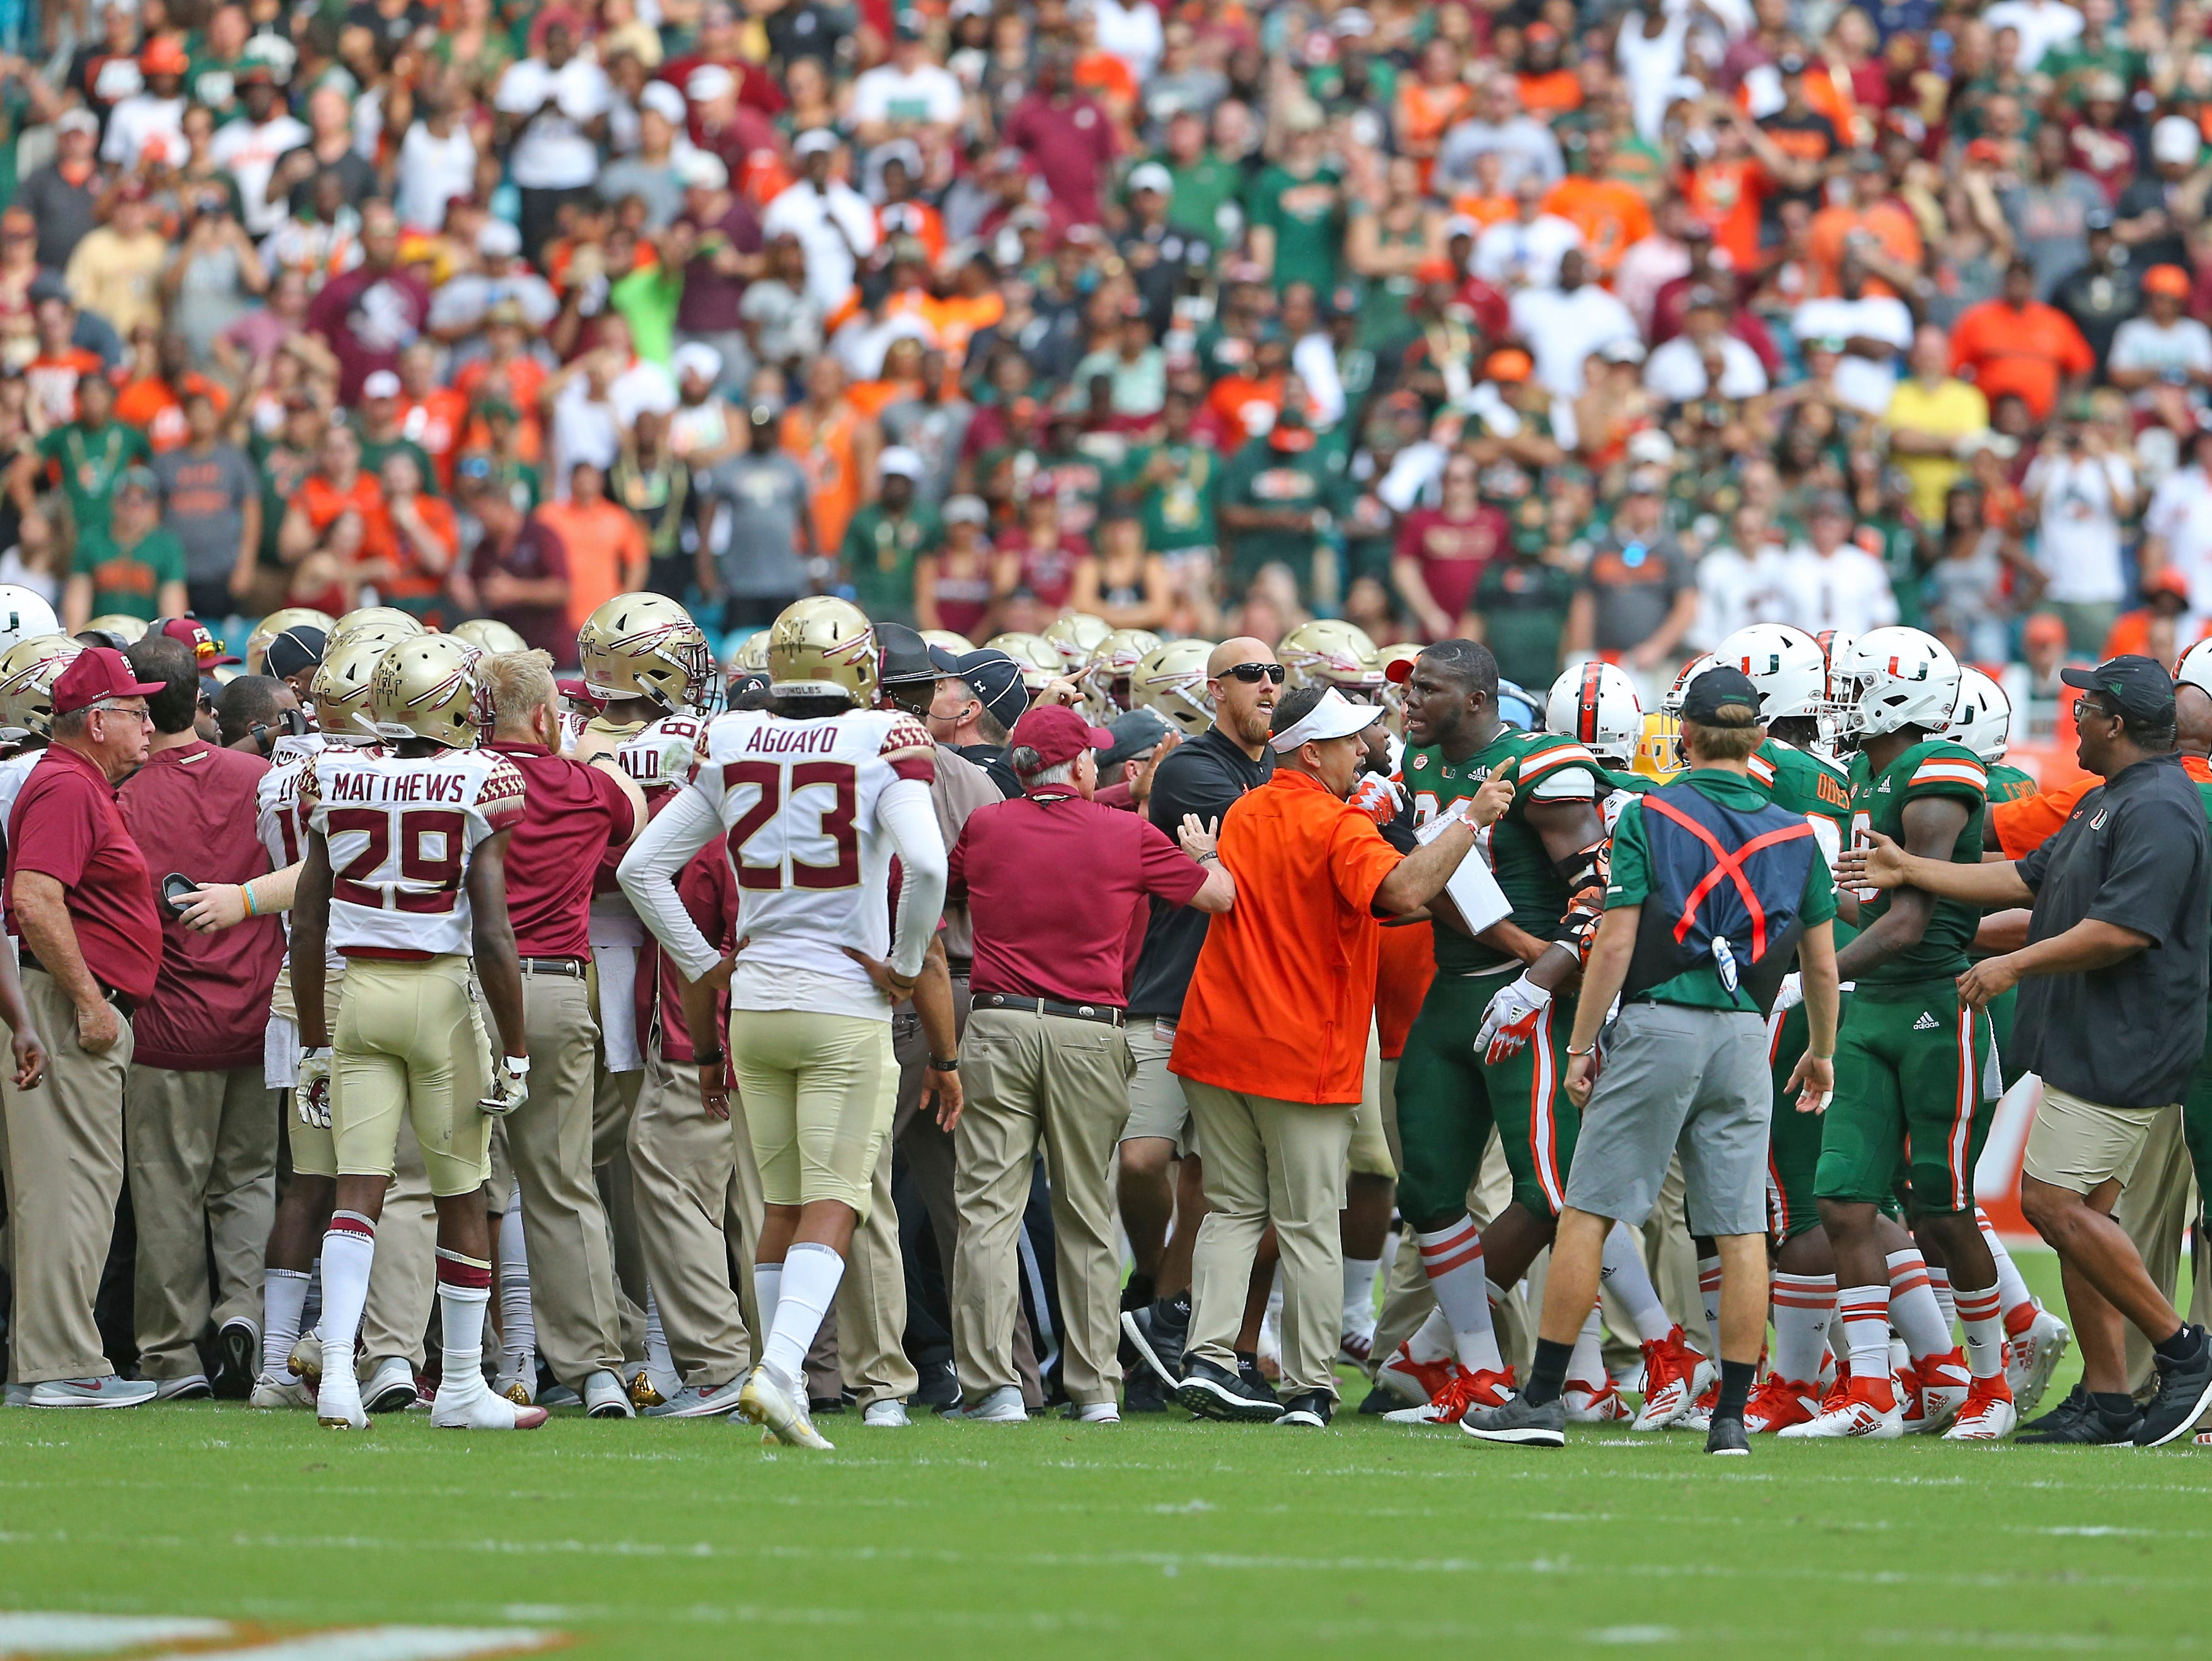 Players from University of Miami and Florida State push each other before the start of an NCAA college football game, Saturday, Oct. 6, 2018, in Miami Gardens, Fla. (David Santiago/Miami Herald via AP)